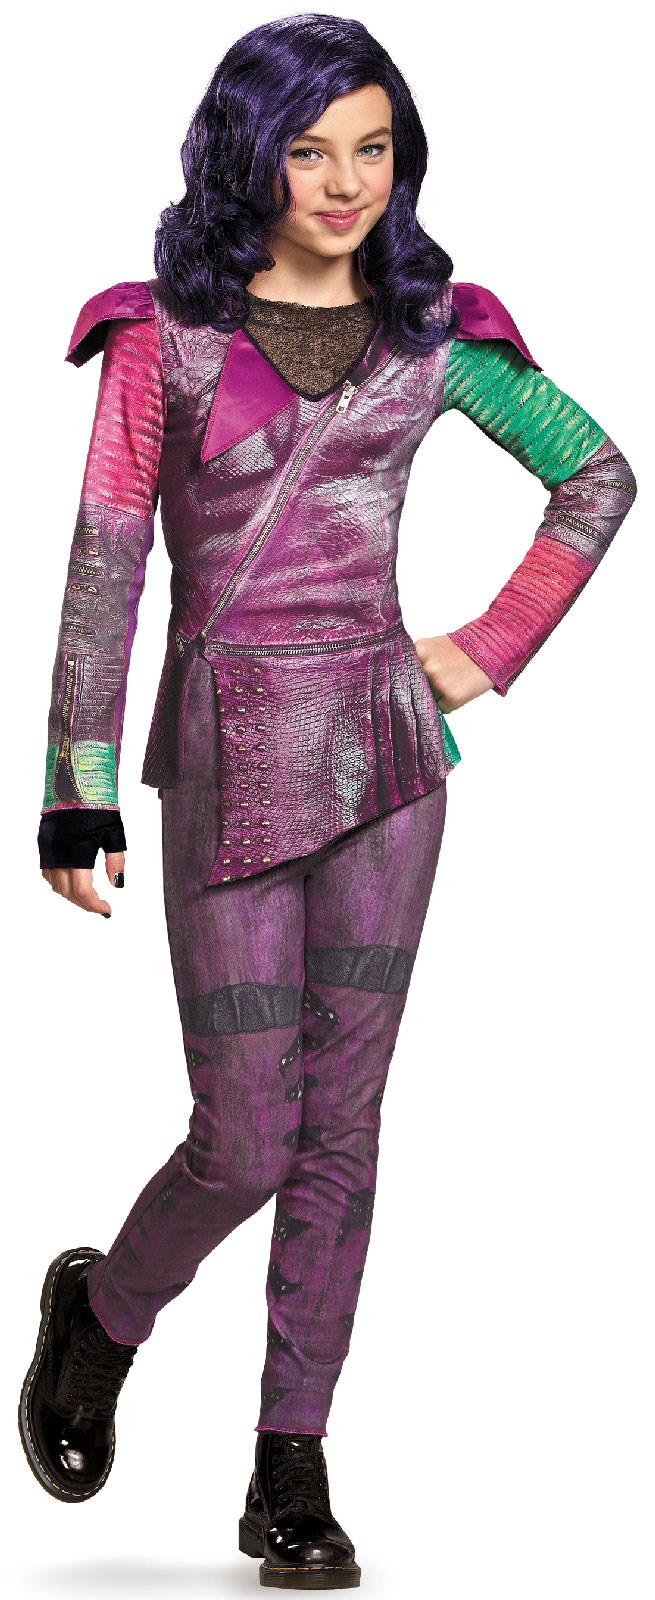 Disneys Descendants: Mal Isle of the Lost Classic Costume For Kids